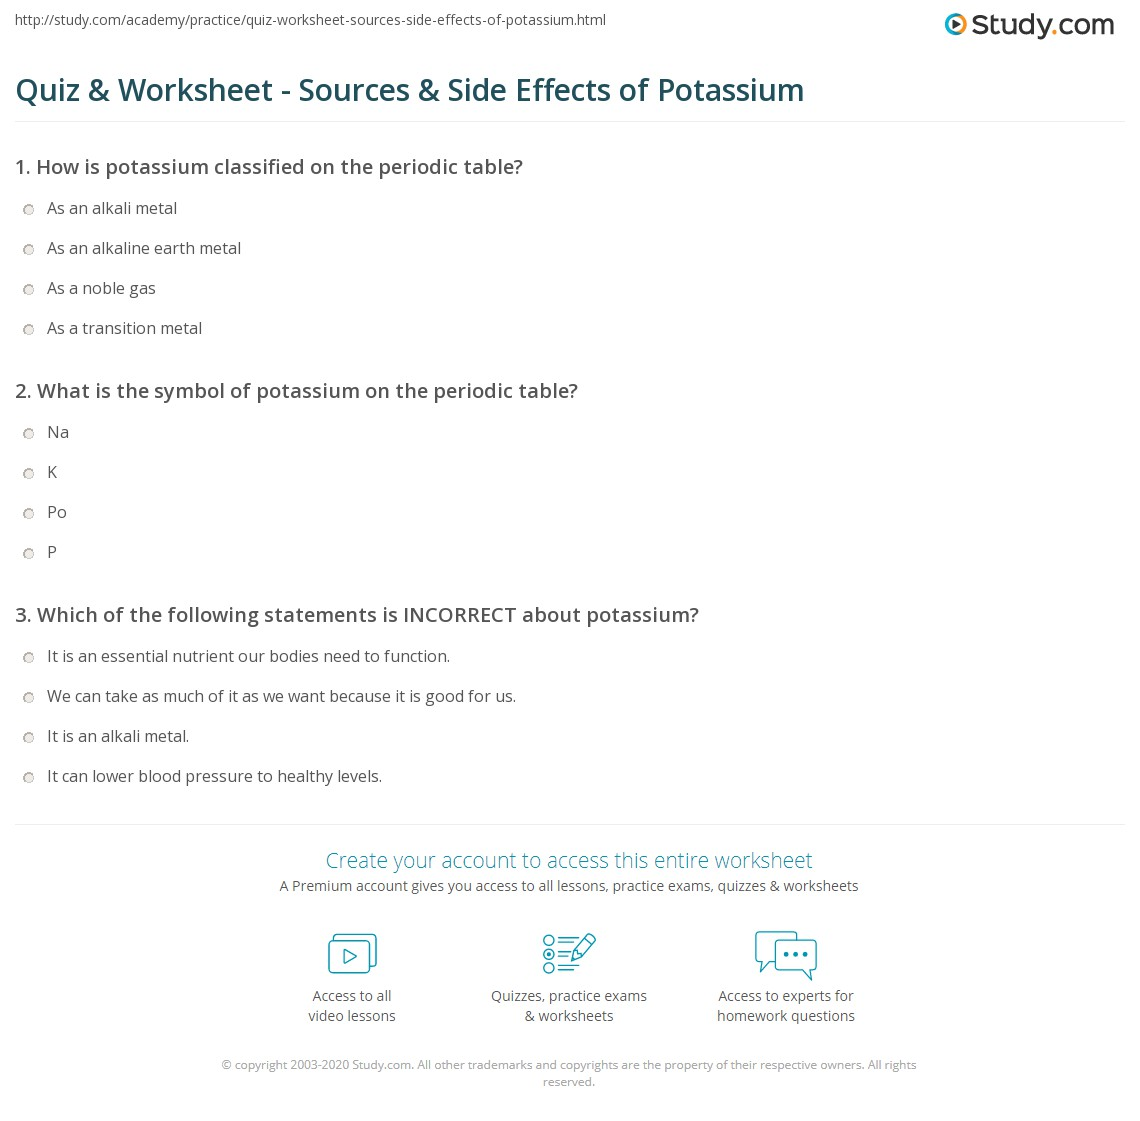 Quiz Worksheet Sources Side Effects Of Potassium Study